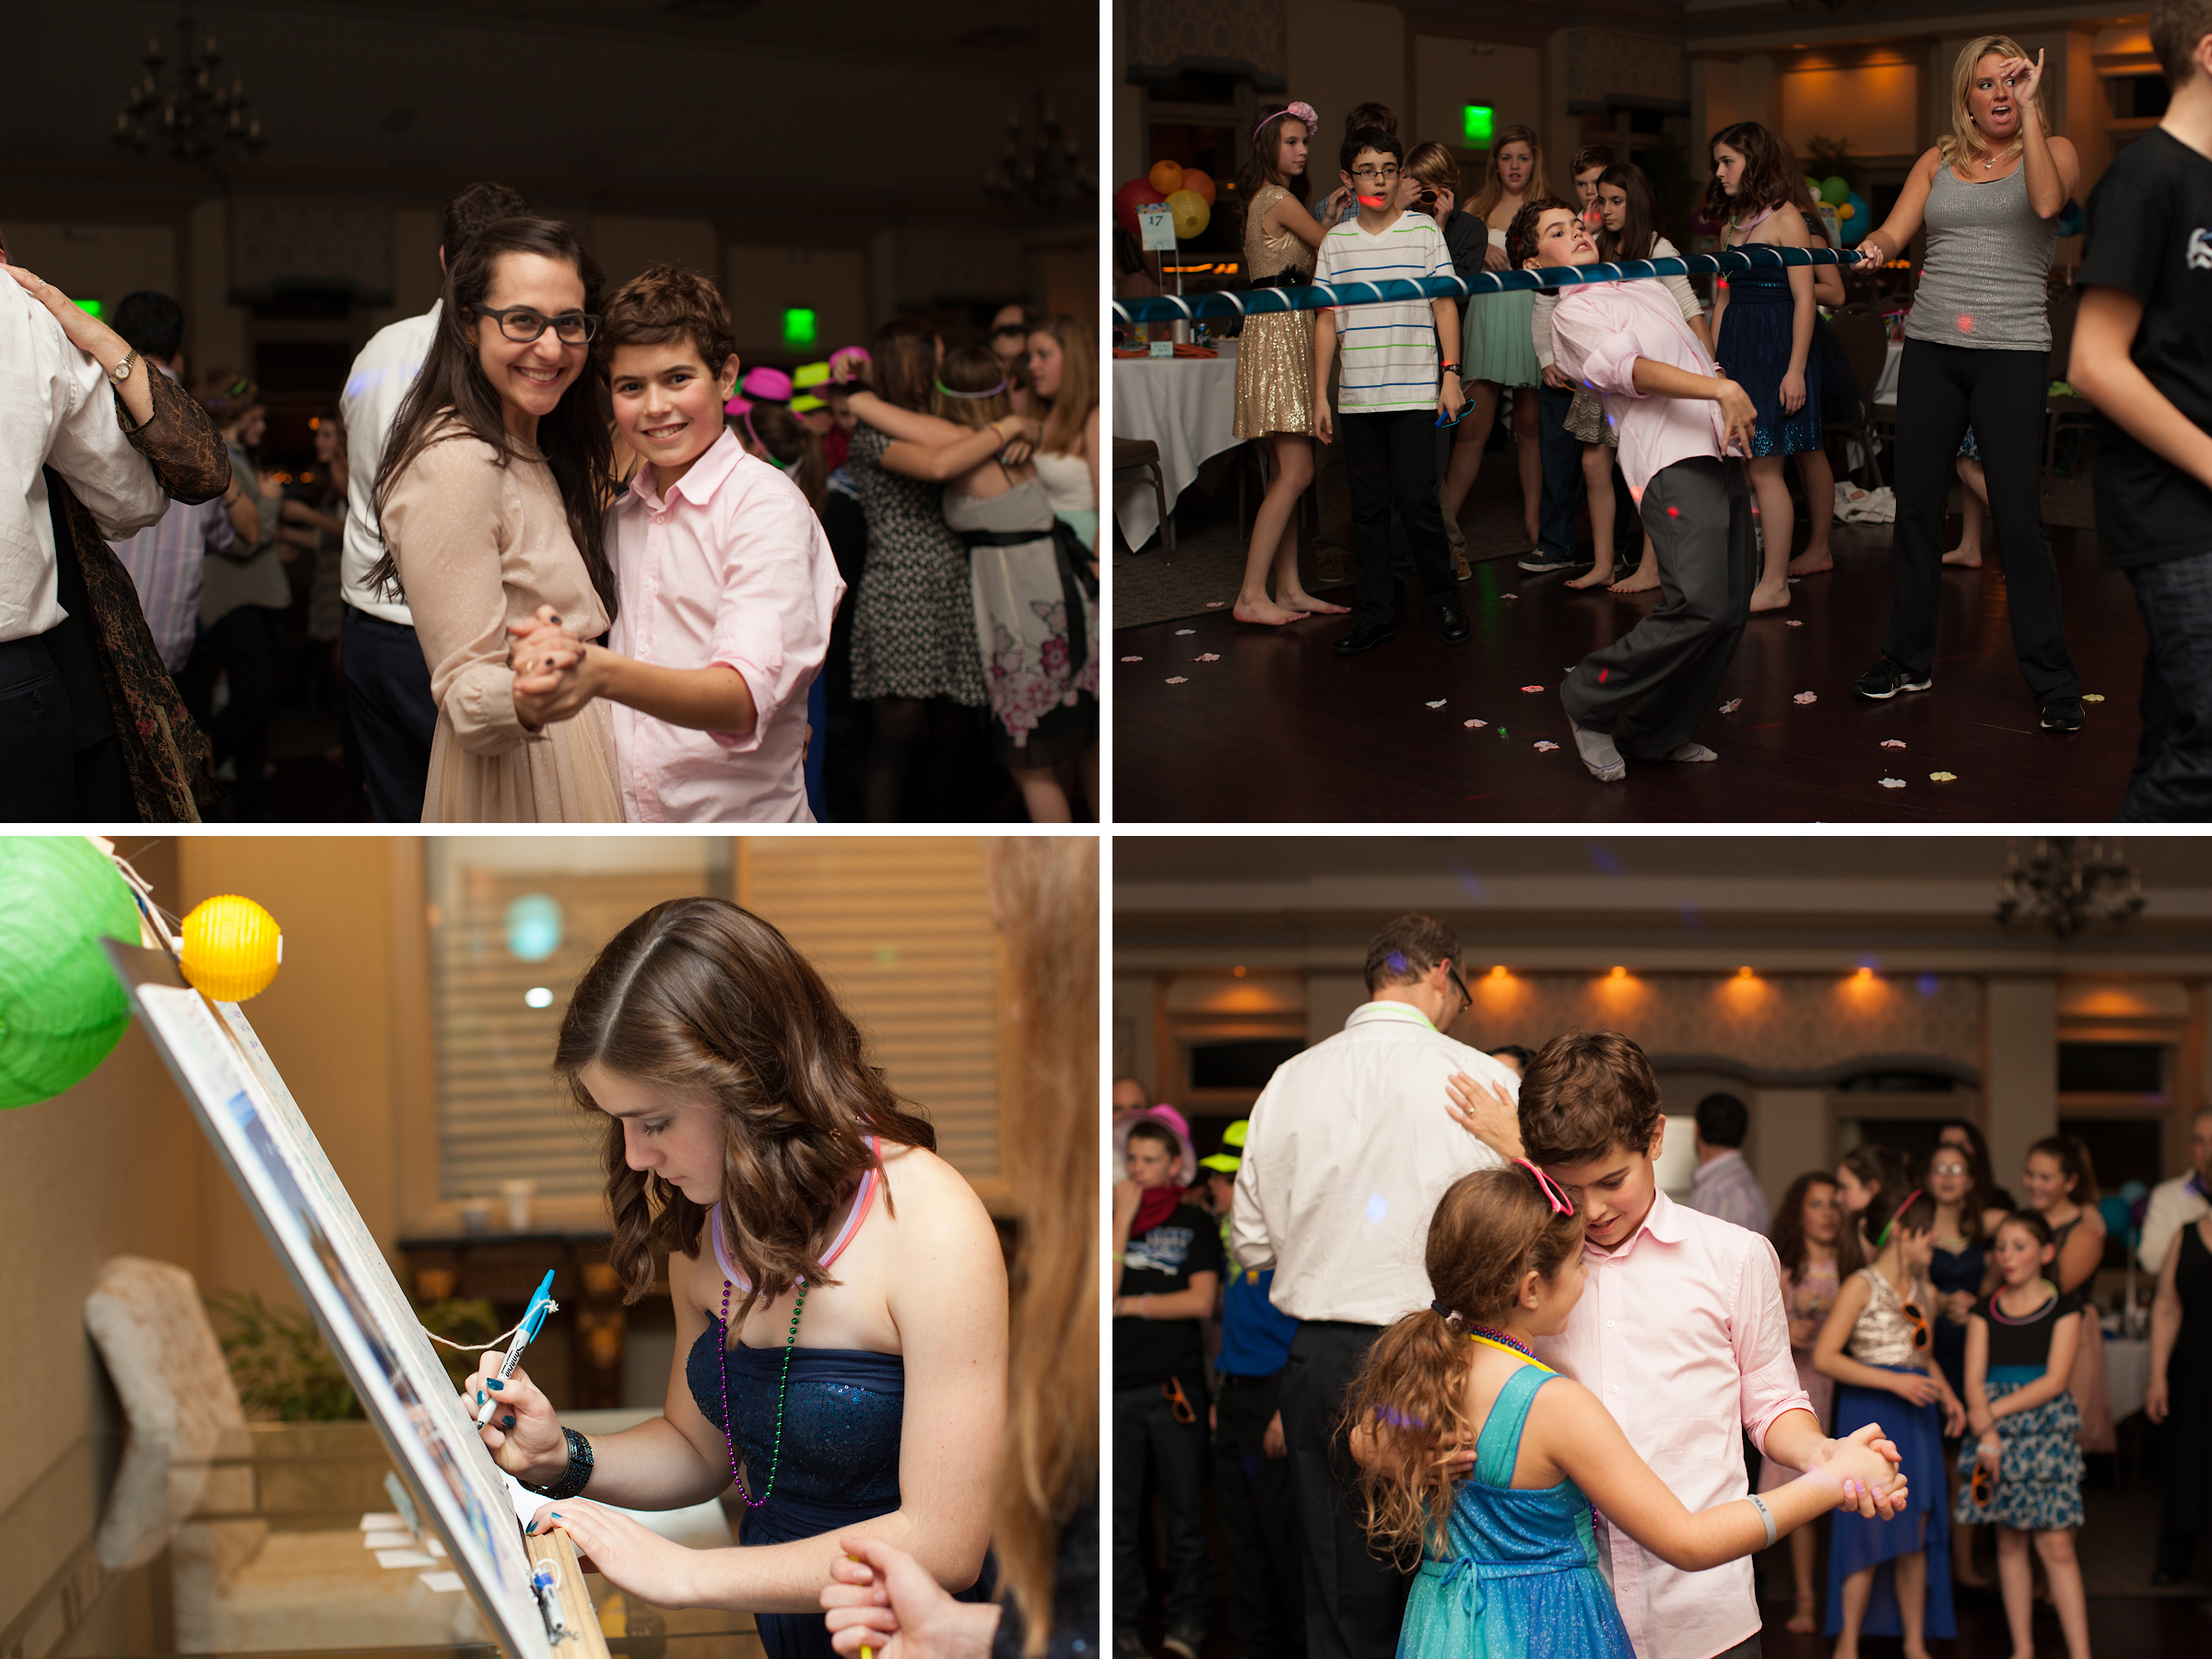 Zach_Bar_Mitzvah_Blog_12